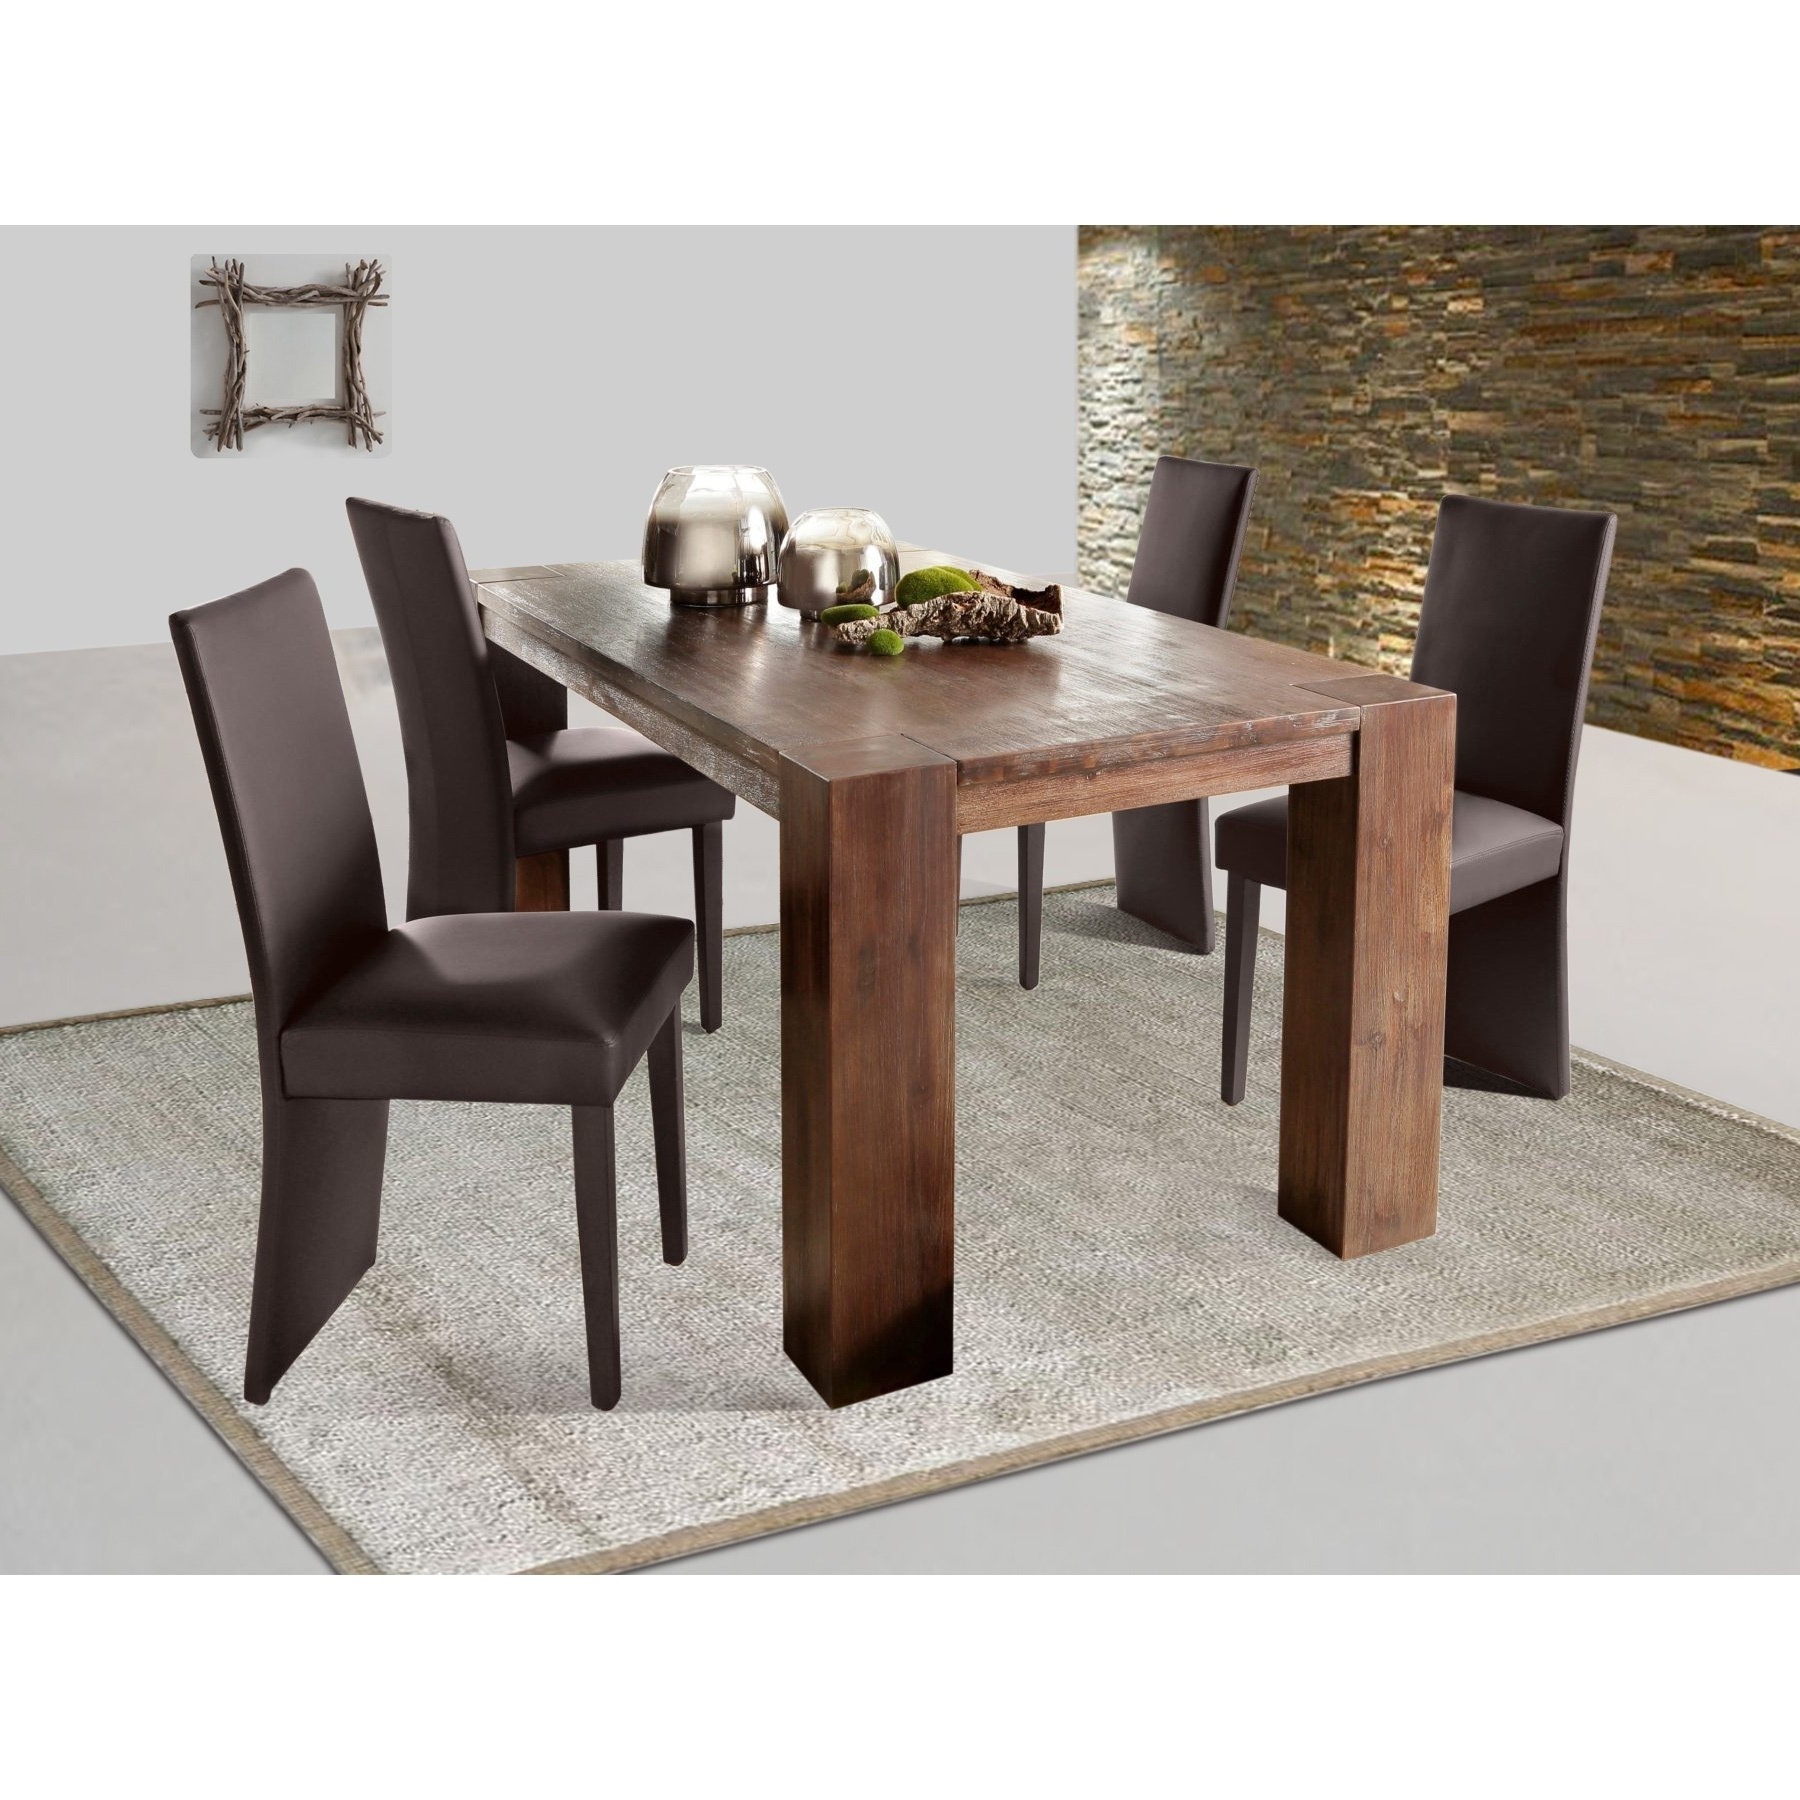 Preferred Dining Tables With Large Legs Intended For Shop Acacia Wide Leg Large Dining Table – Free Shipping Today (Gallery 25 of 25)